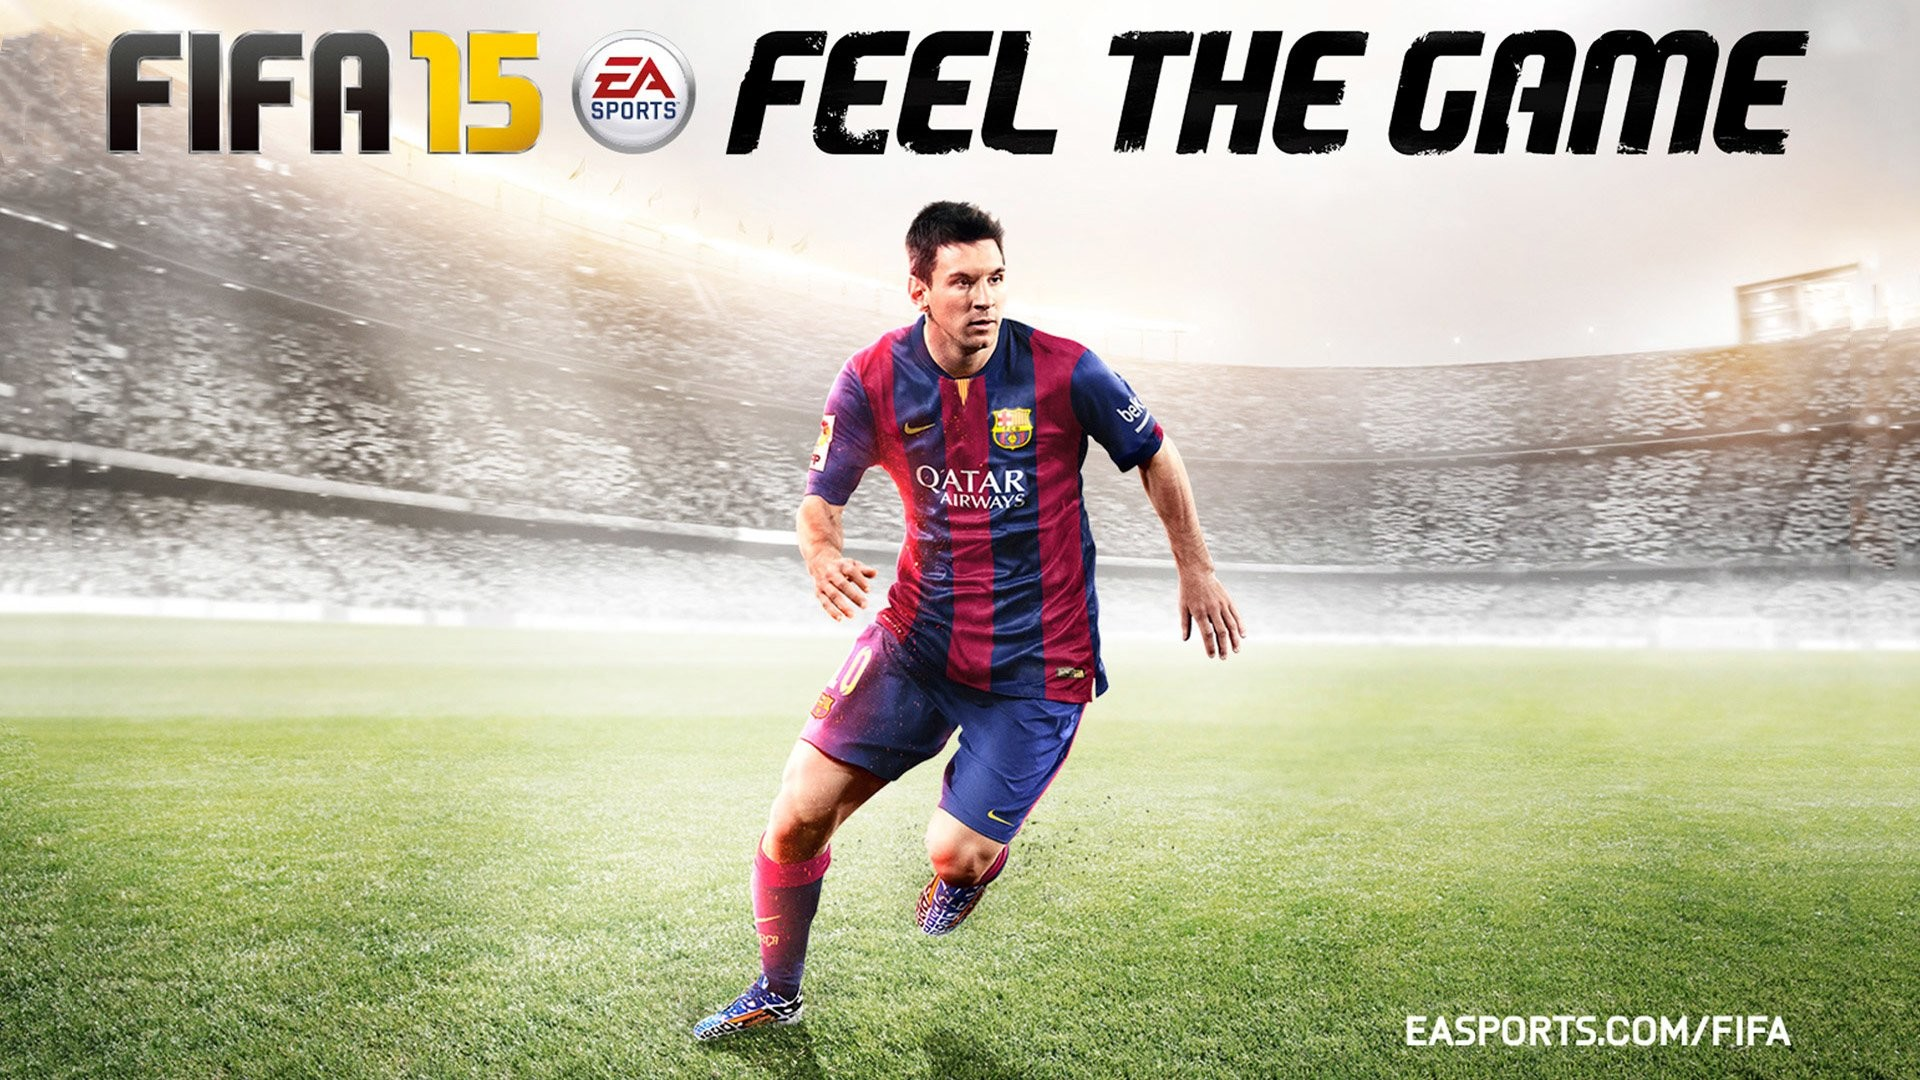 fifa 15 free download for windows 8